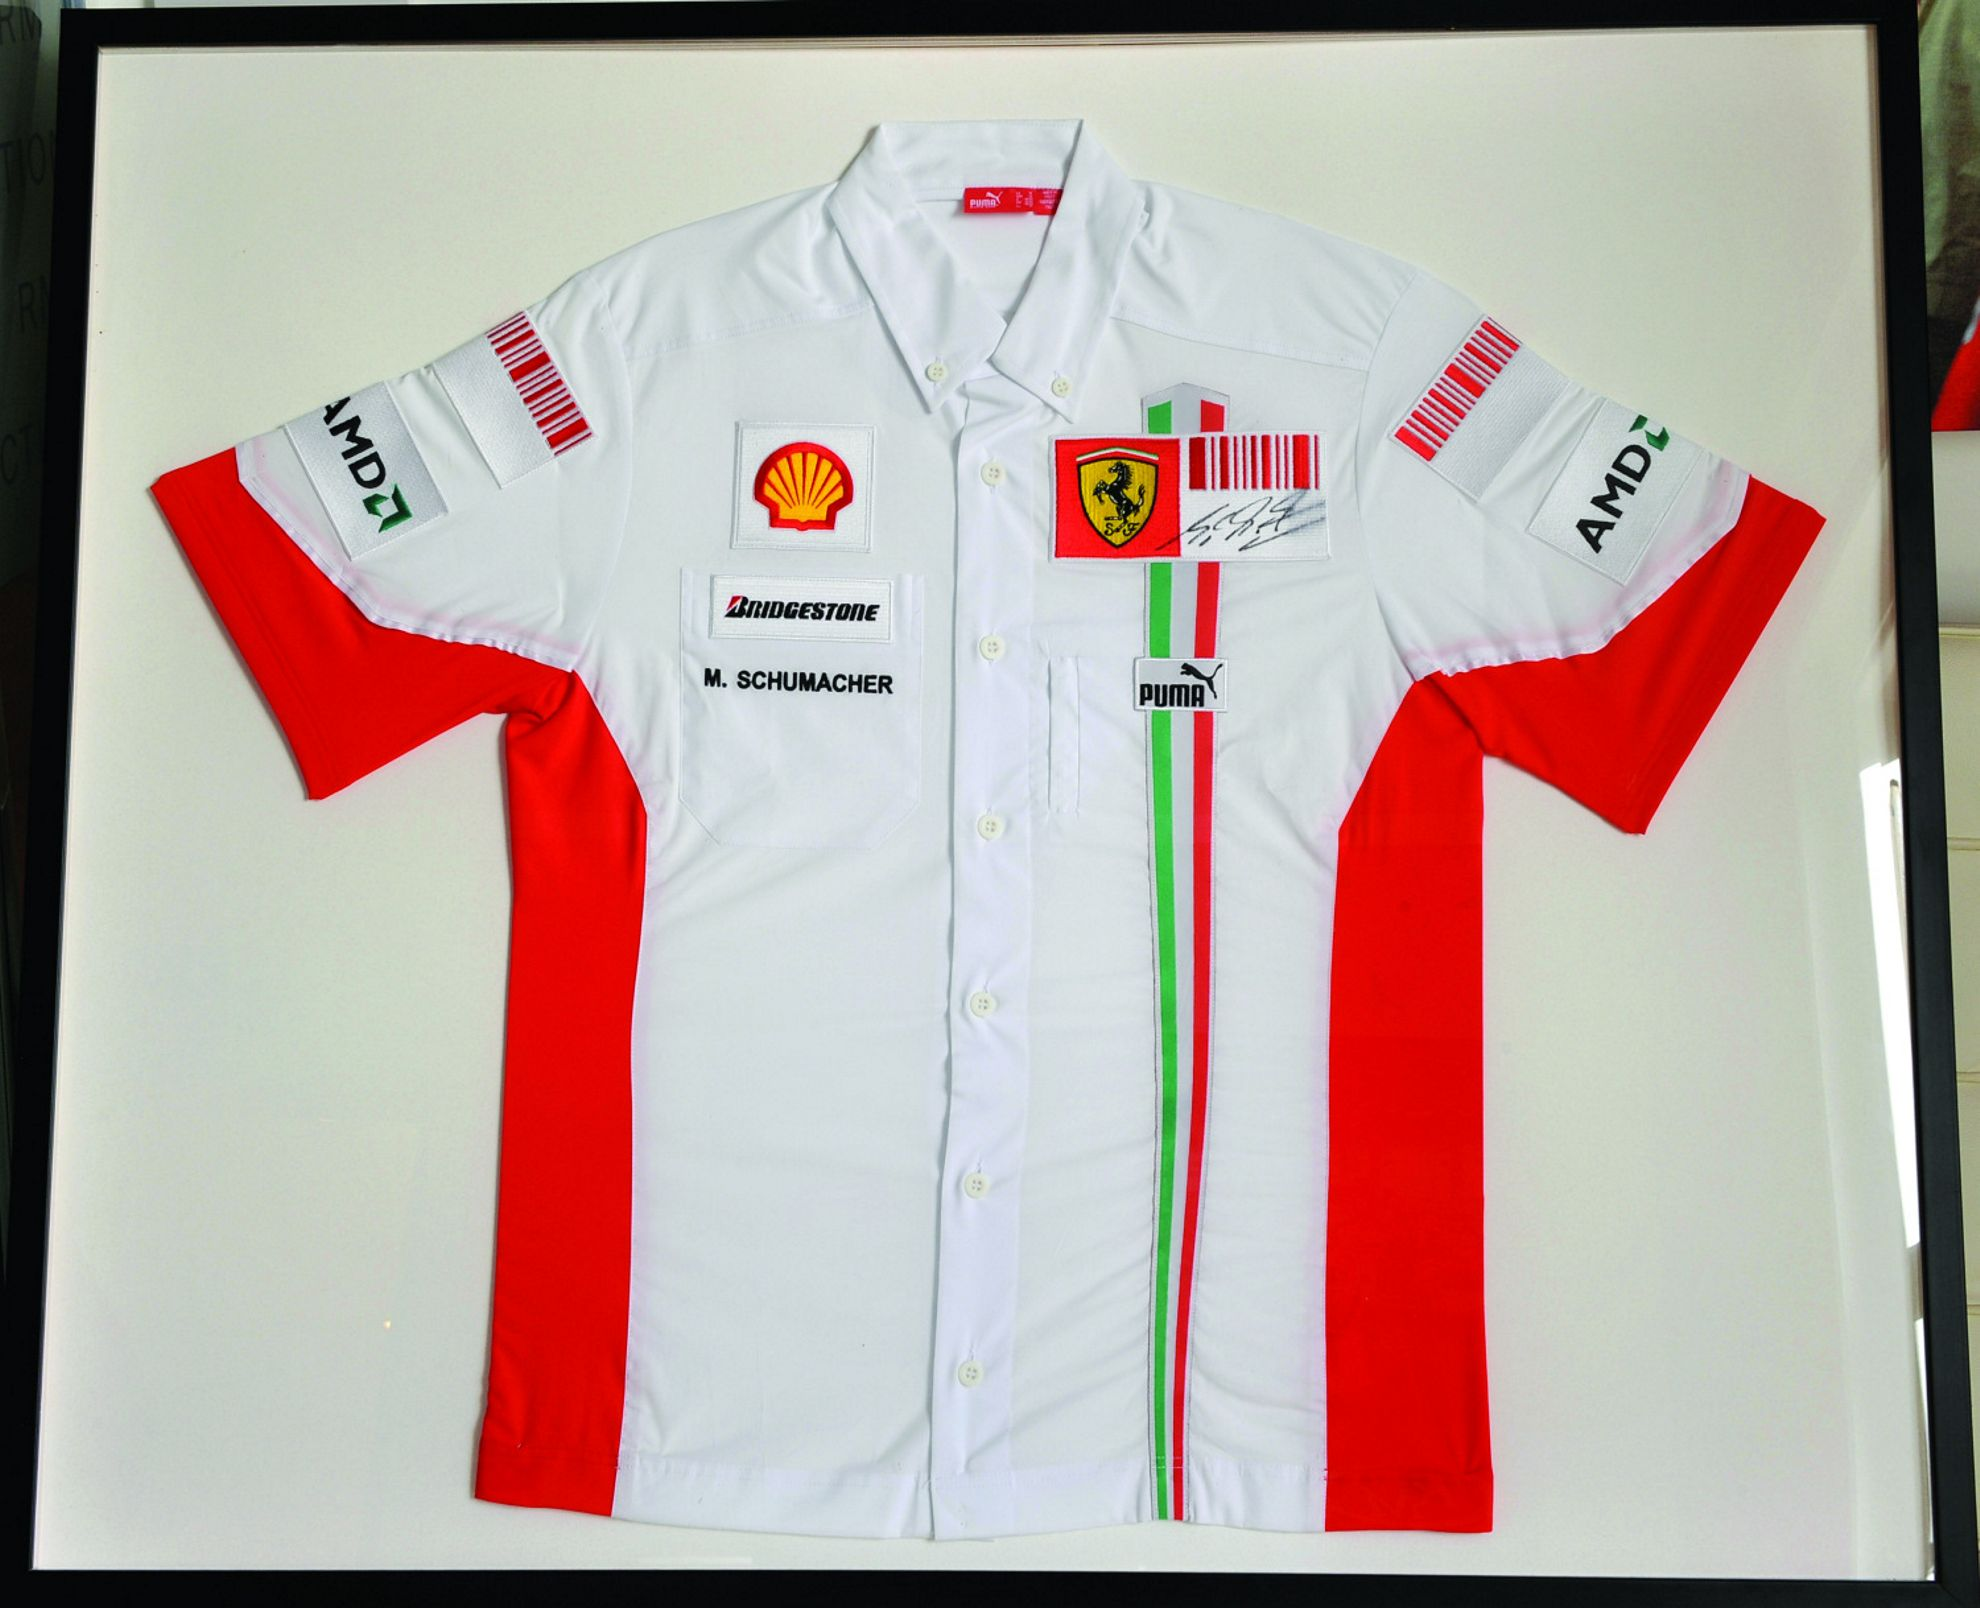 Ferrari_shirt_signed_by_Michael_Schumacher